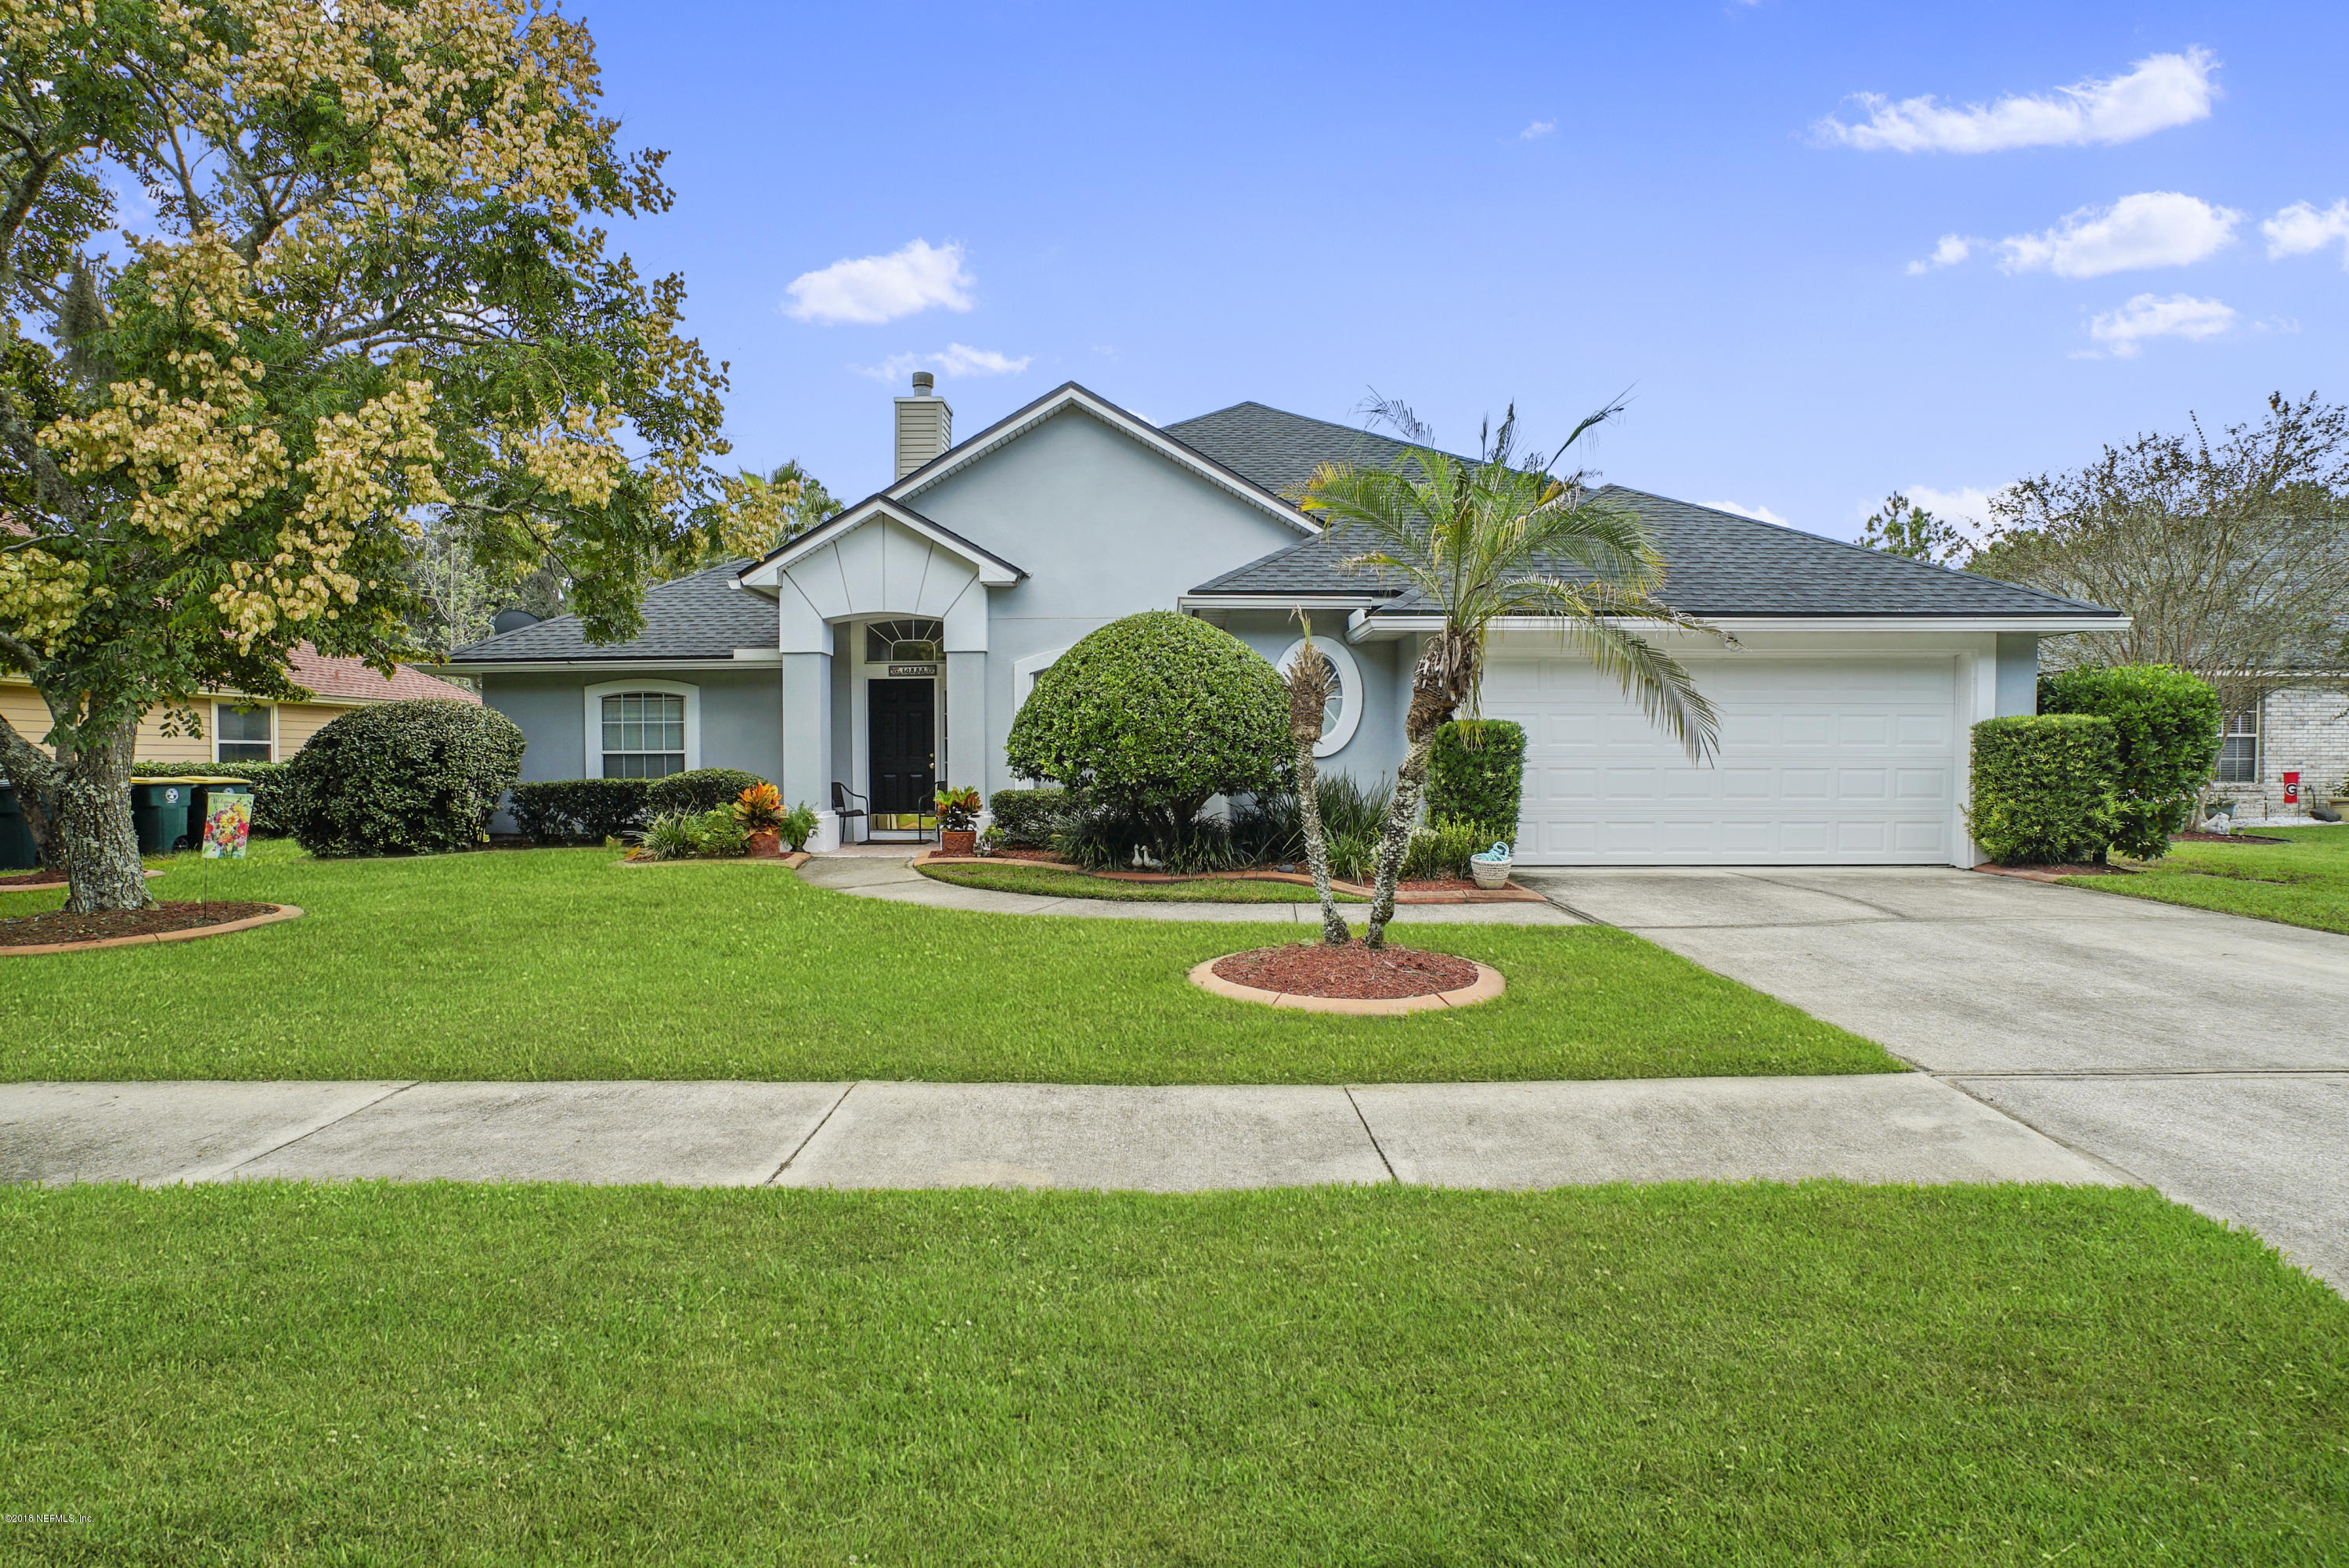 10888 HAMILTON DOWNS, JACKSONVILLE, FLORIDA 32257, 4 Bedrooms Bedrooms, ,2 BathroomsBathrooms,Residential - single family,For sale,HAMILTON DOWNS,965175